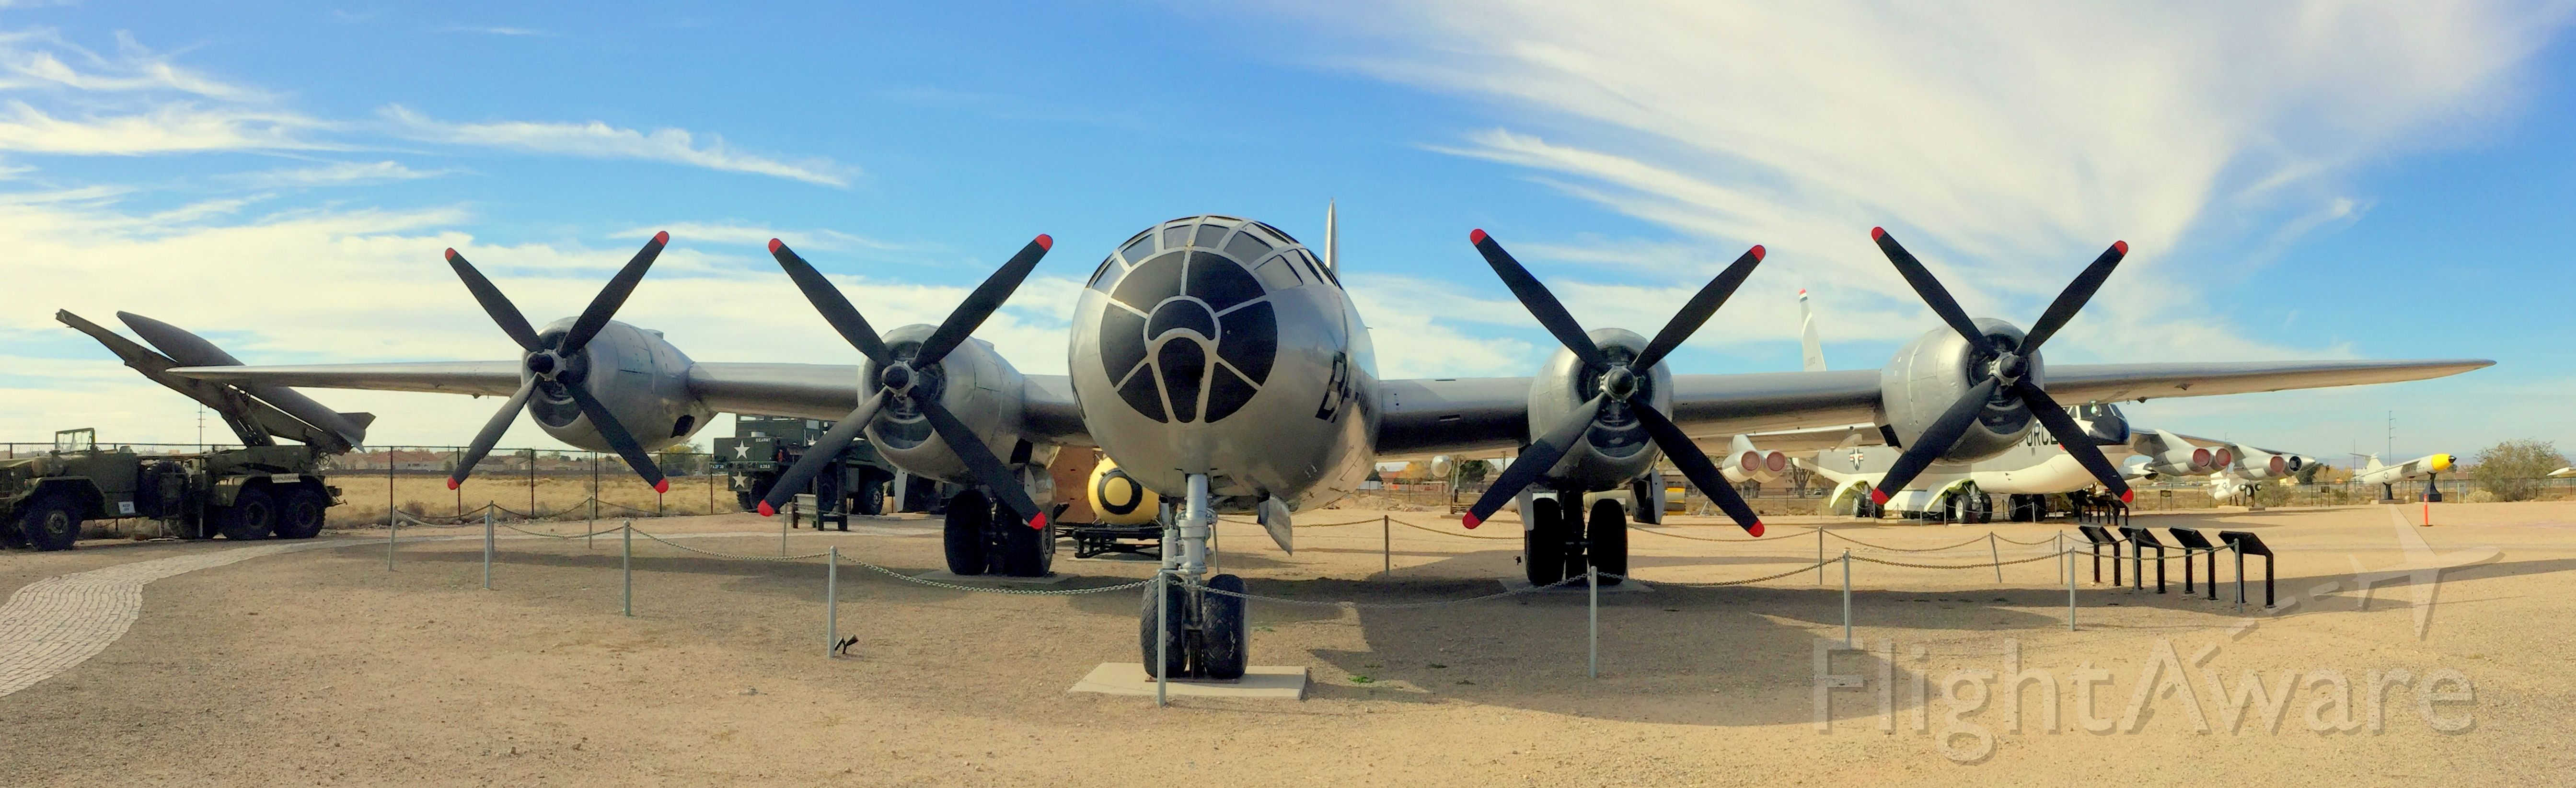 Boeing B-29 Superfortress — - WWII B-29 on display at the Nuclear Science and Technology Museum in Albuquerque.